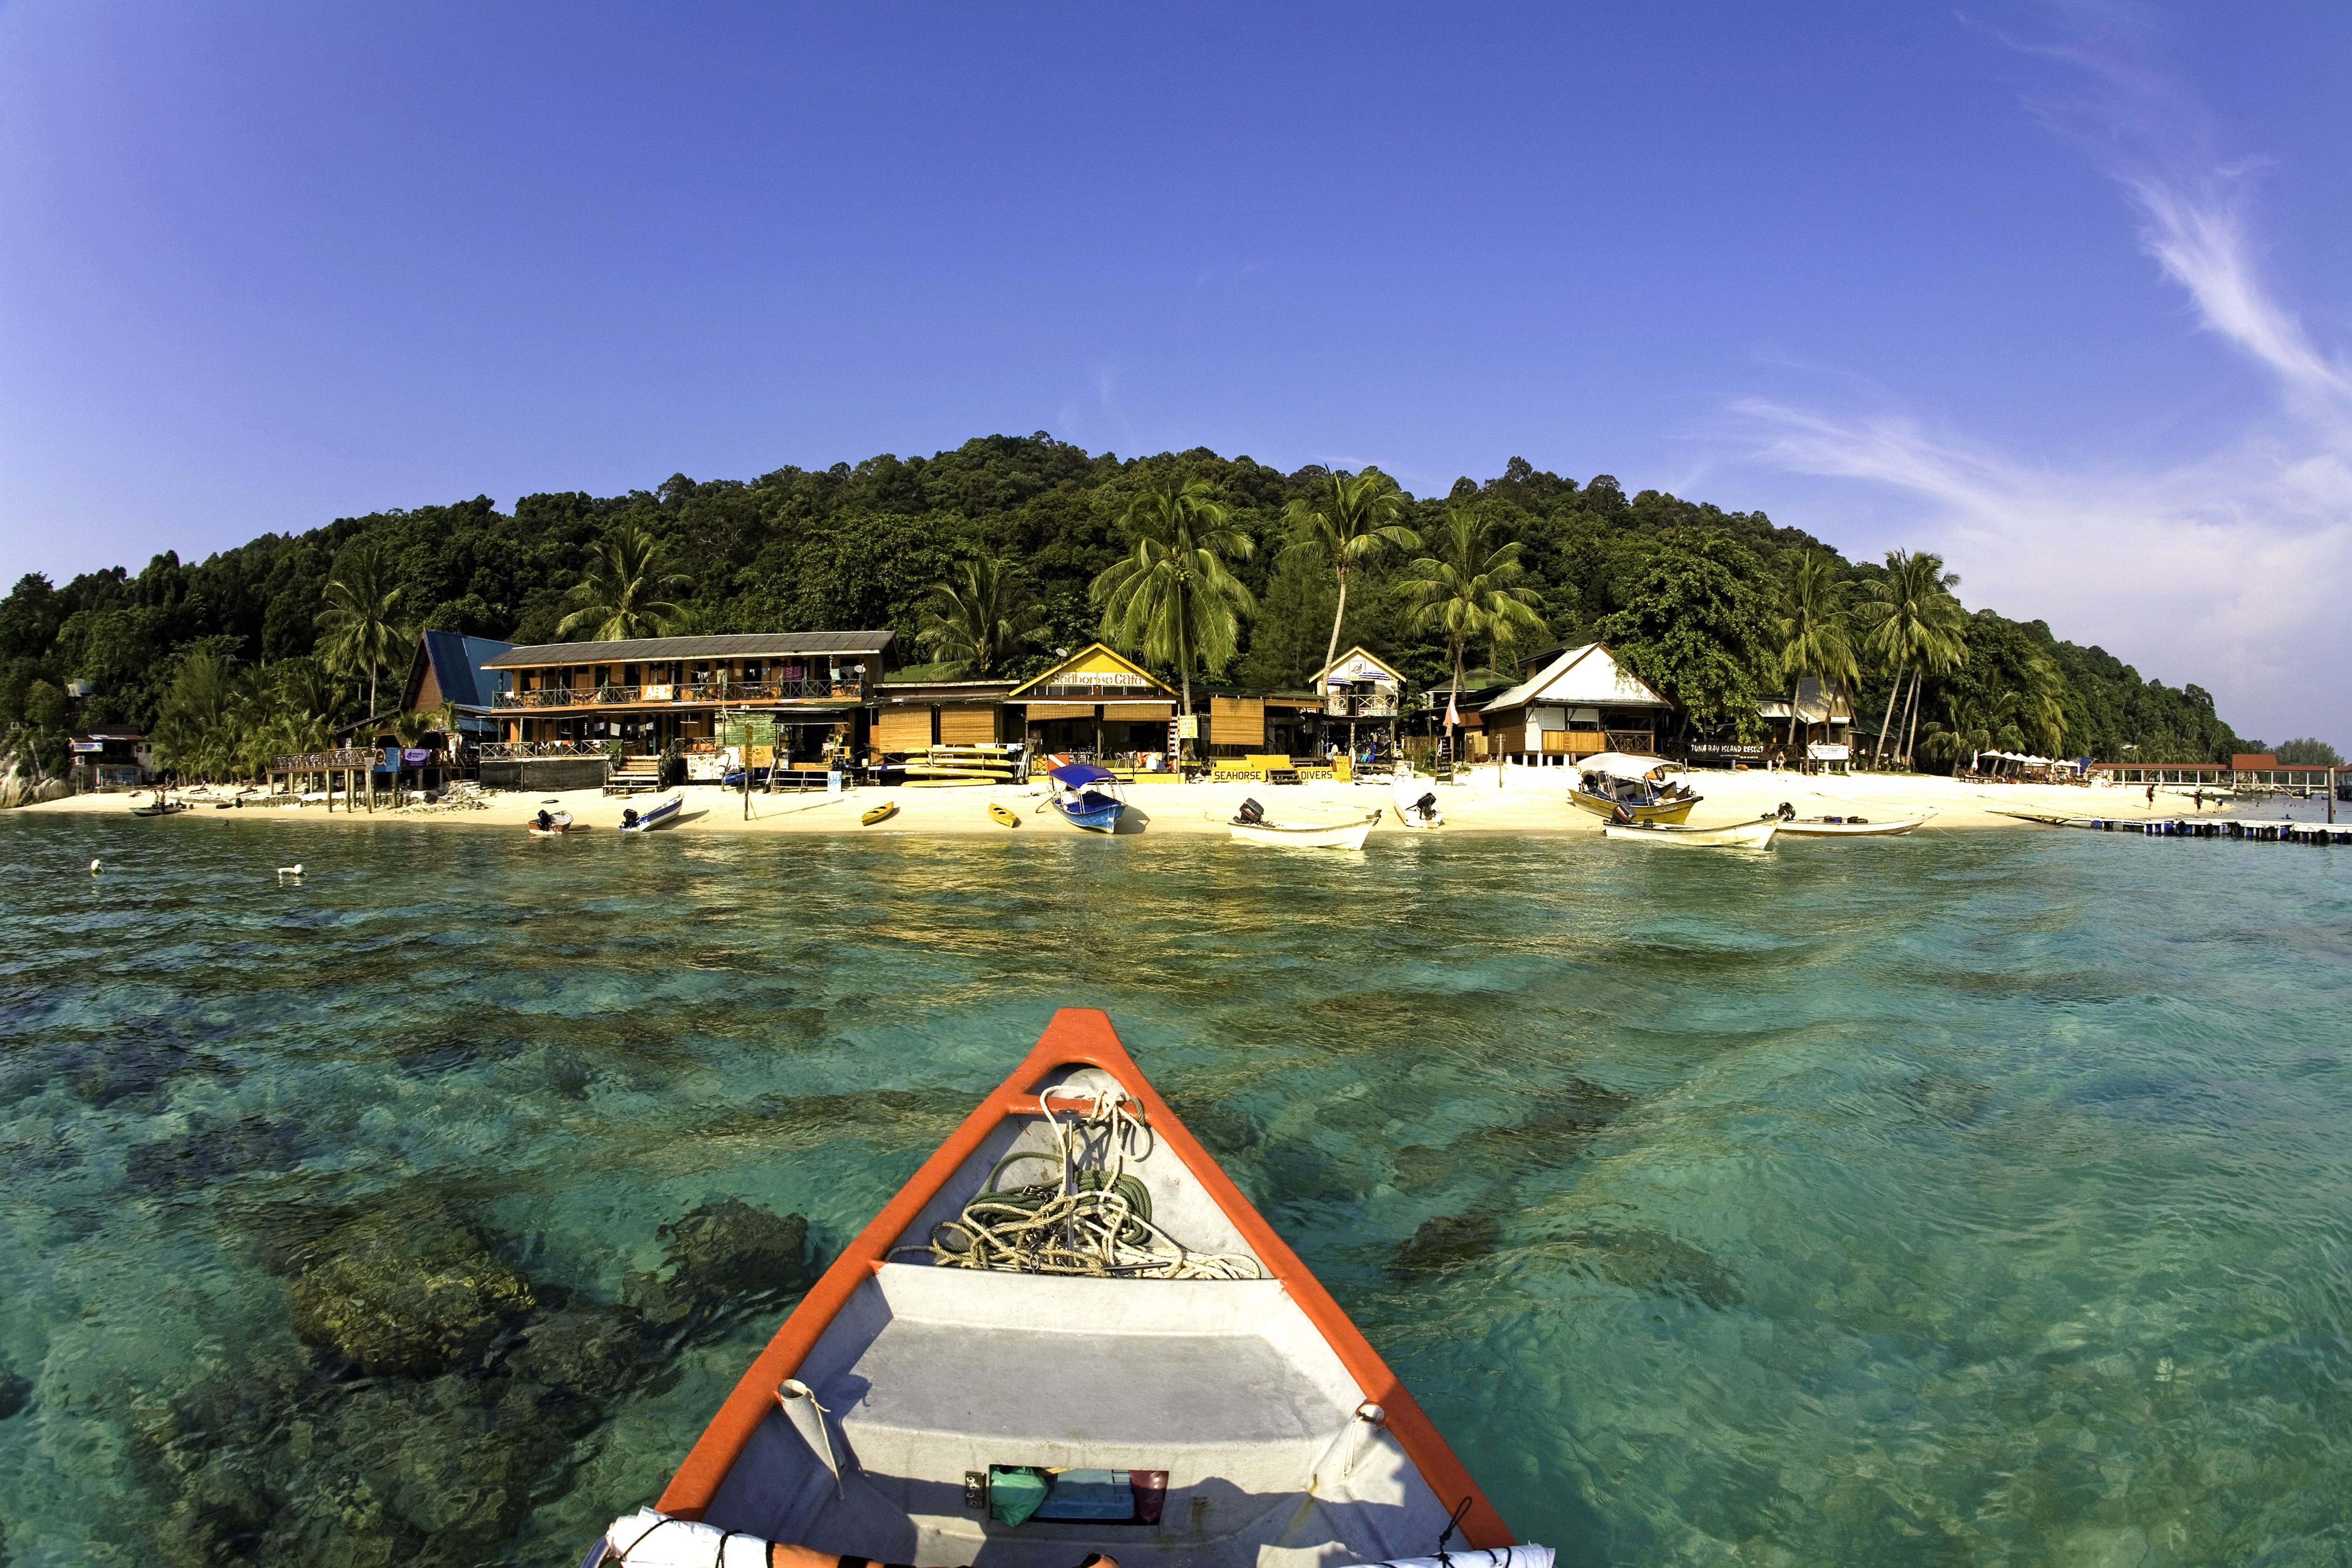 Boat arriving at Perhentian Besar island in Malaysia